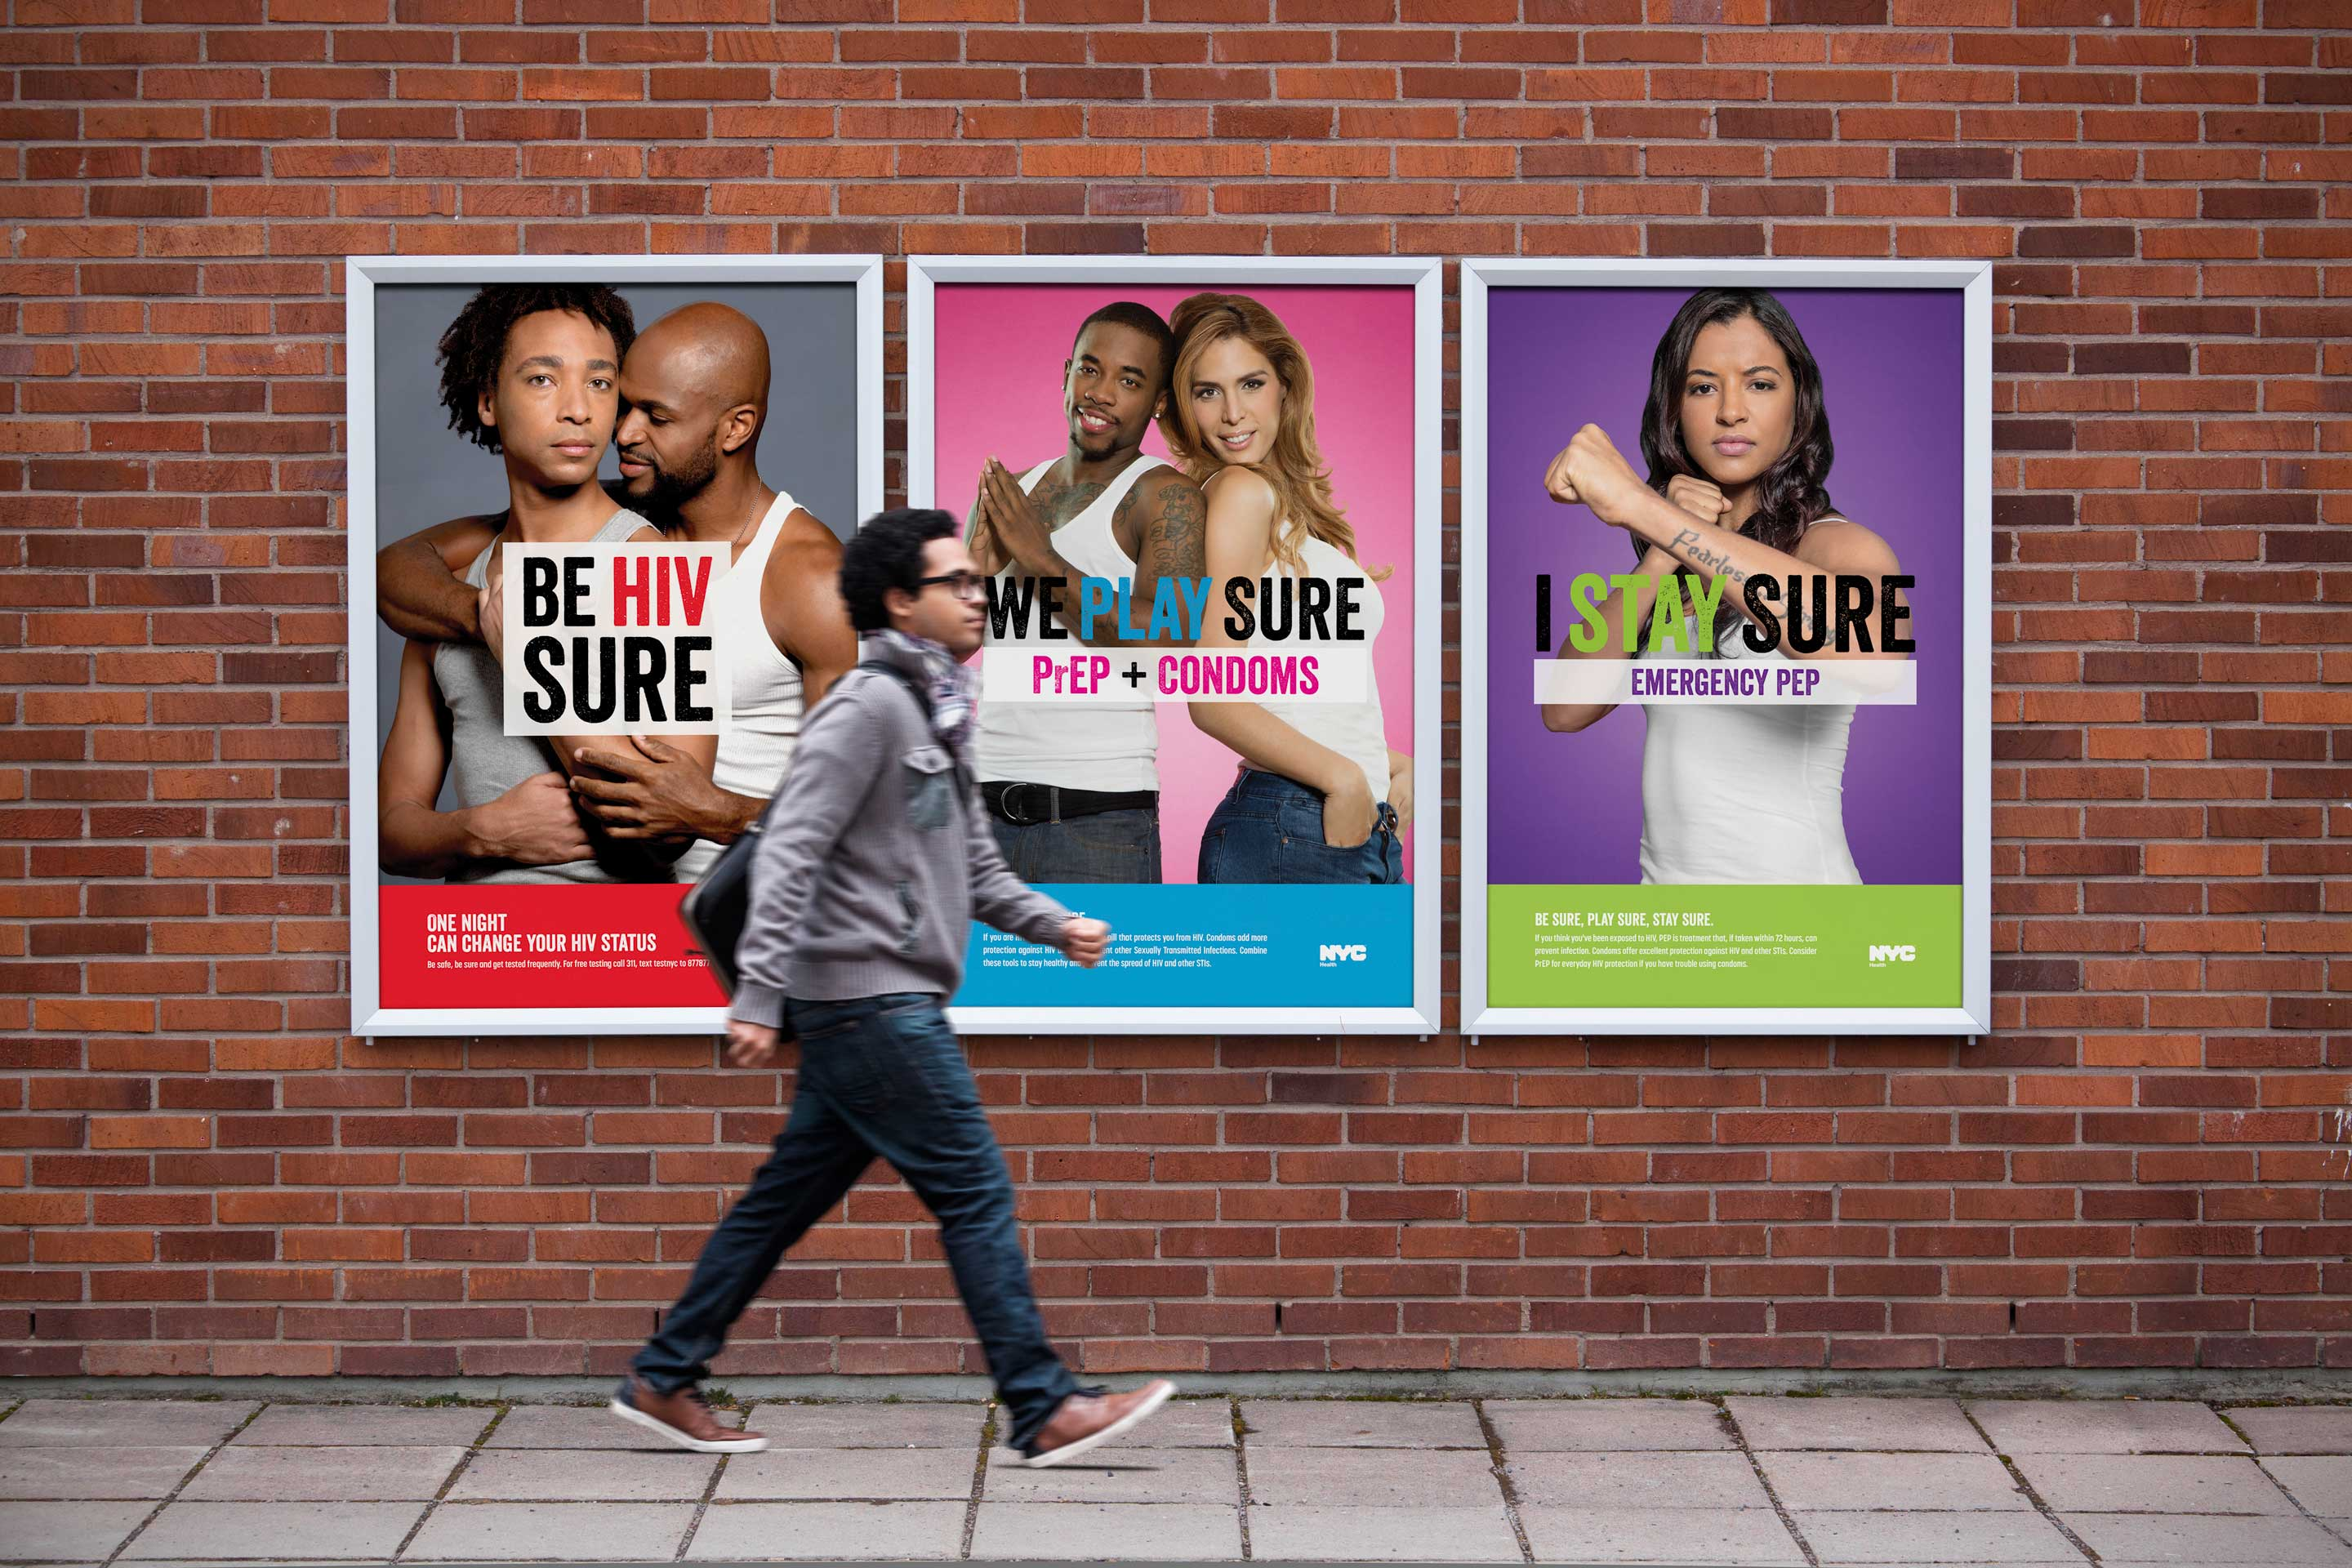 Three HIV Awareness billboard ads of confident couples and individuals for New York City's Play Sure campaign